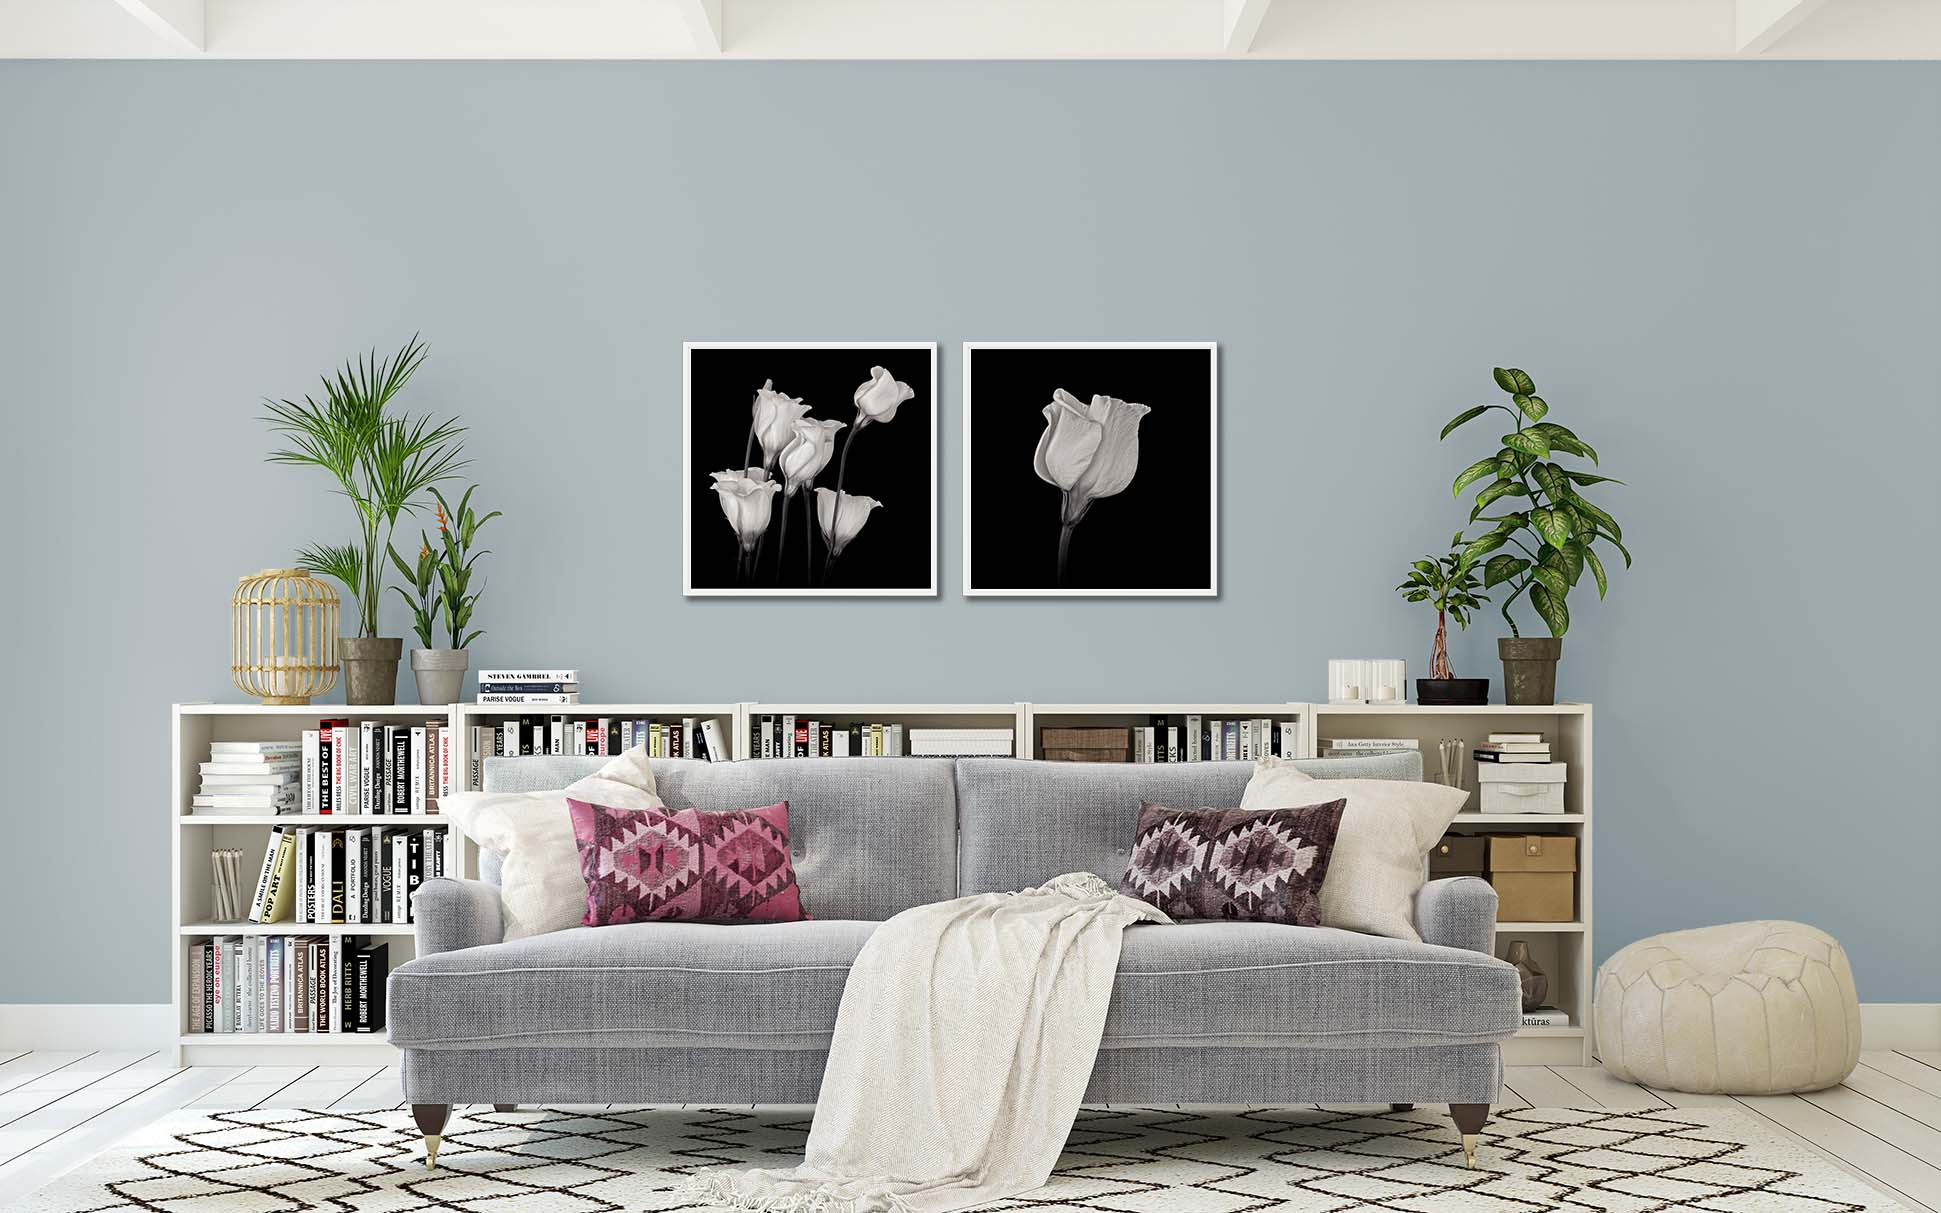 Two limited edition prints of white campanula by fine art photographer Paul Coghlin.